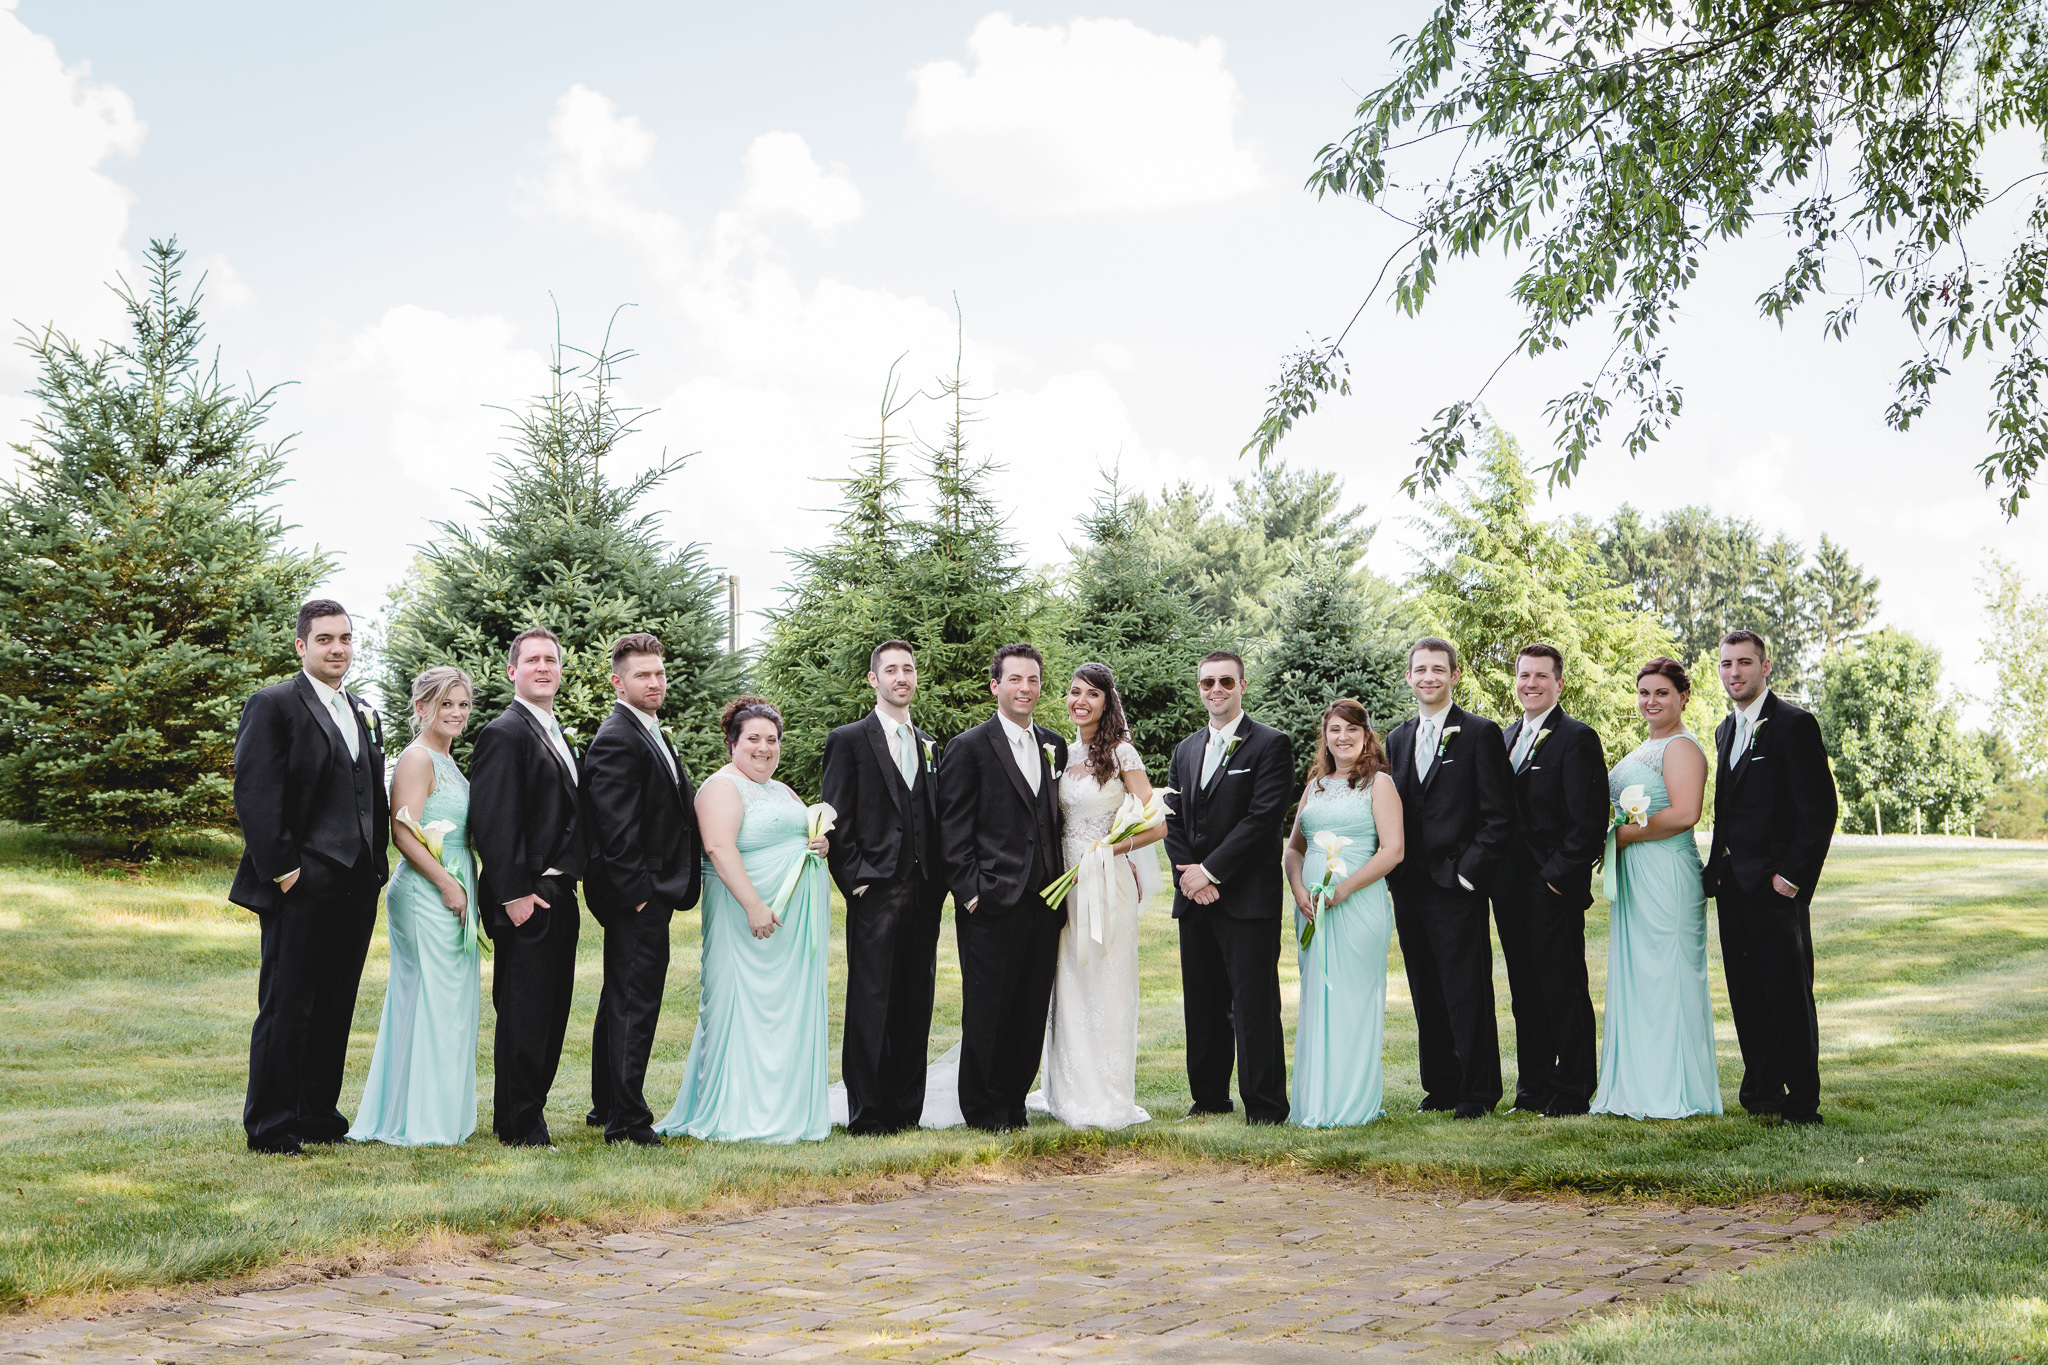 Bridal party poses for a photo at Greystone Fields